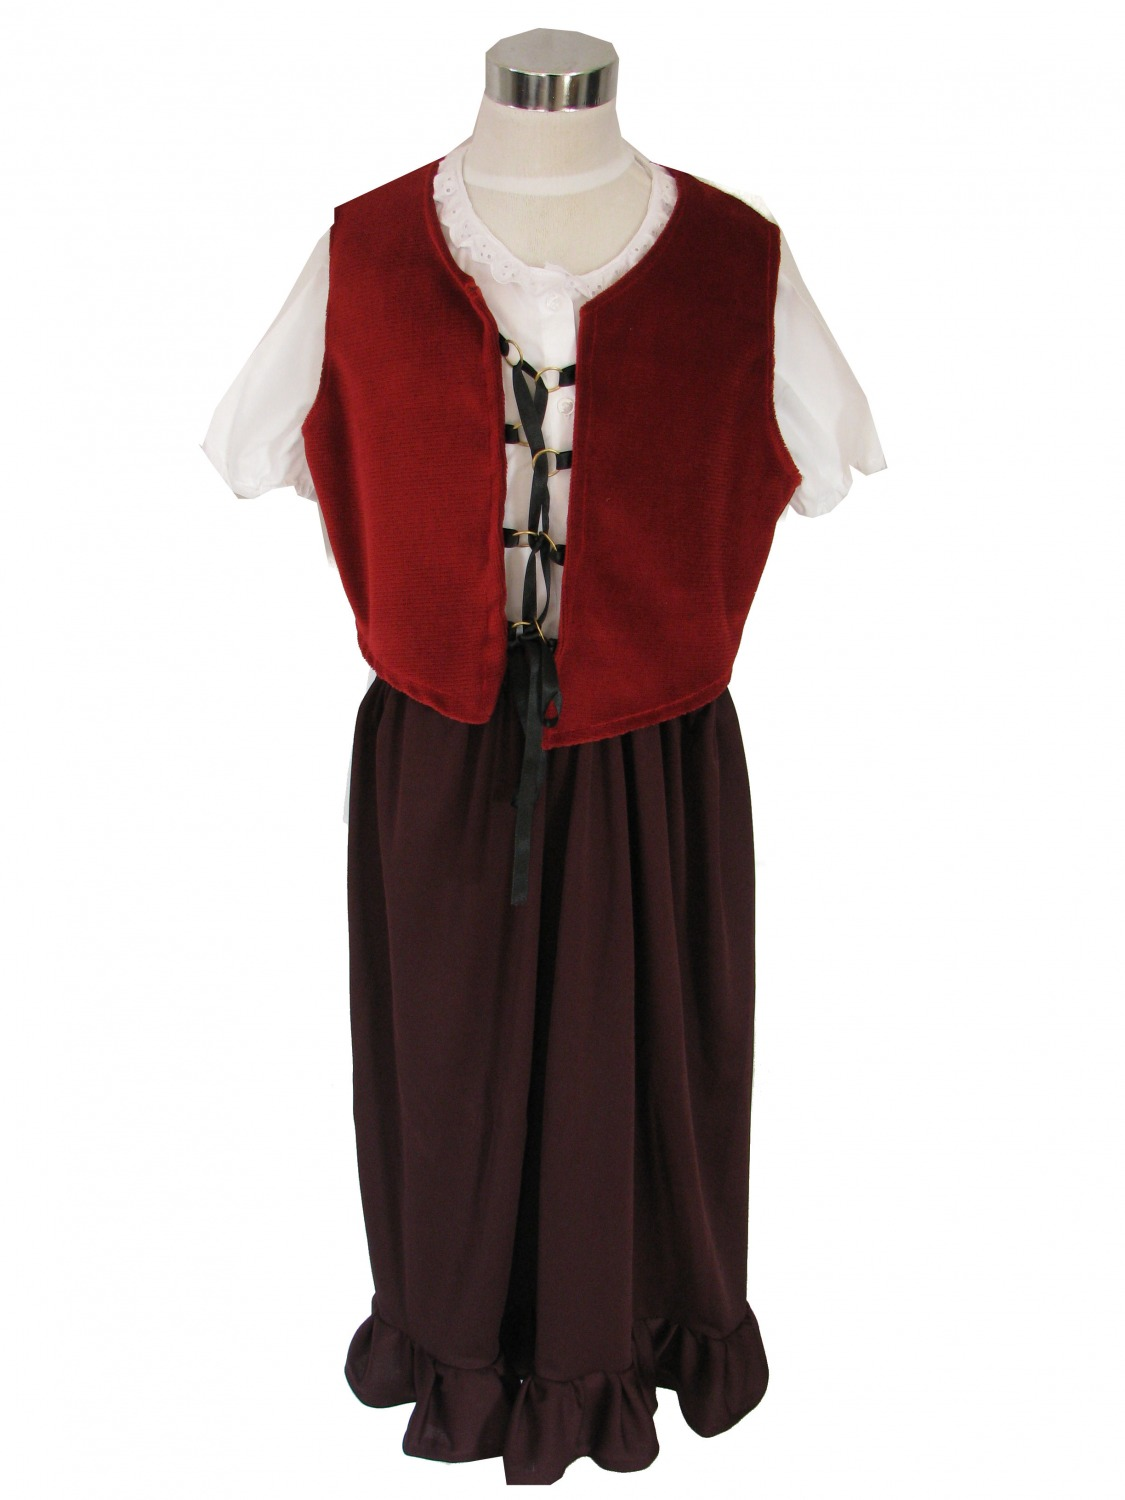 Girls Medieval Tudor Fancy Dress Costume Age 7 - 9 Years Image